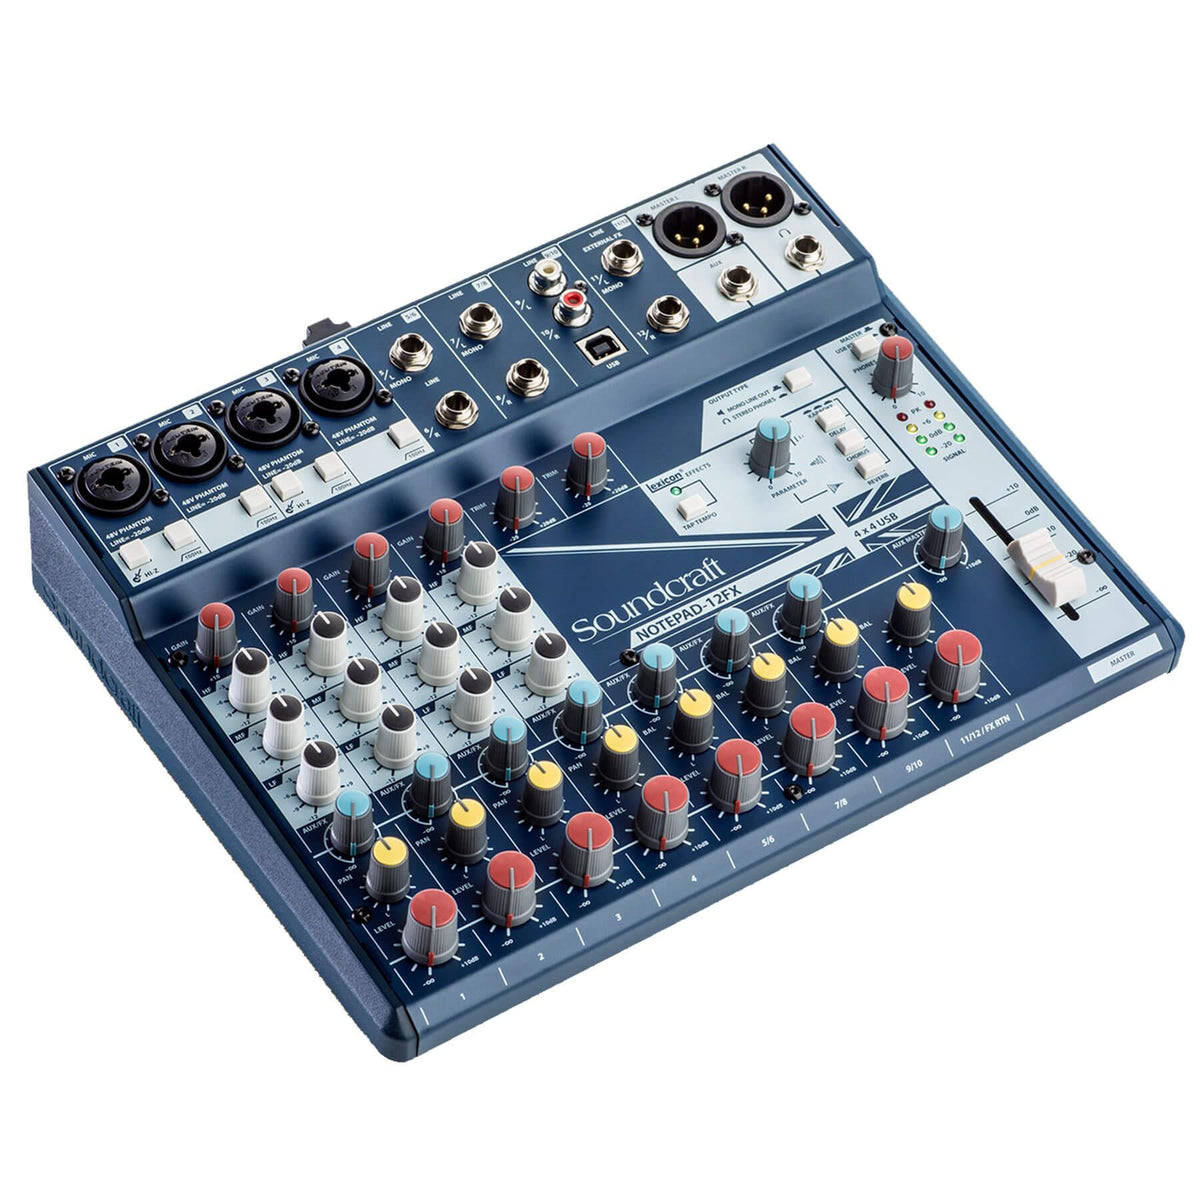 Soundcraft Notepad-12FX Analog Mixing Console